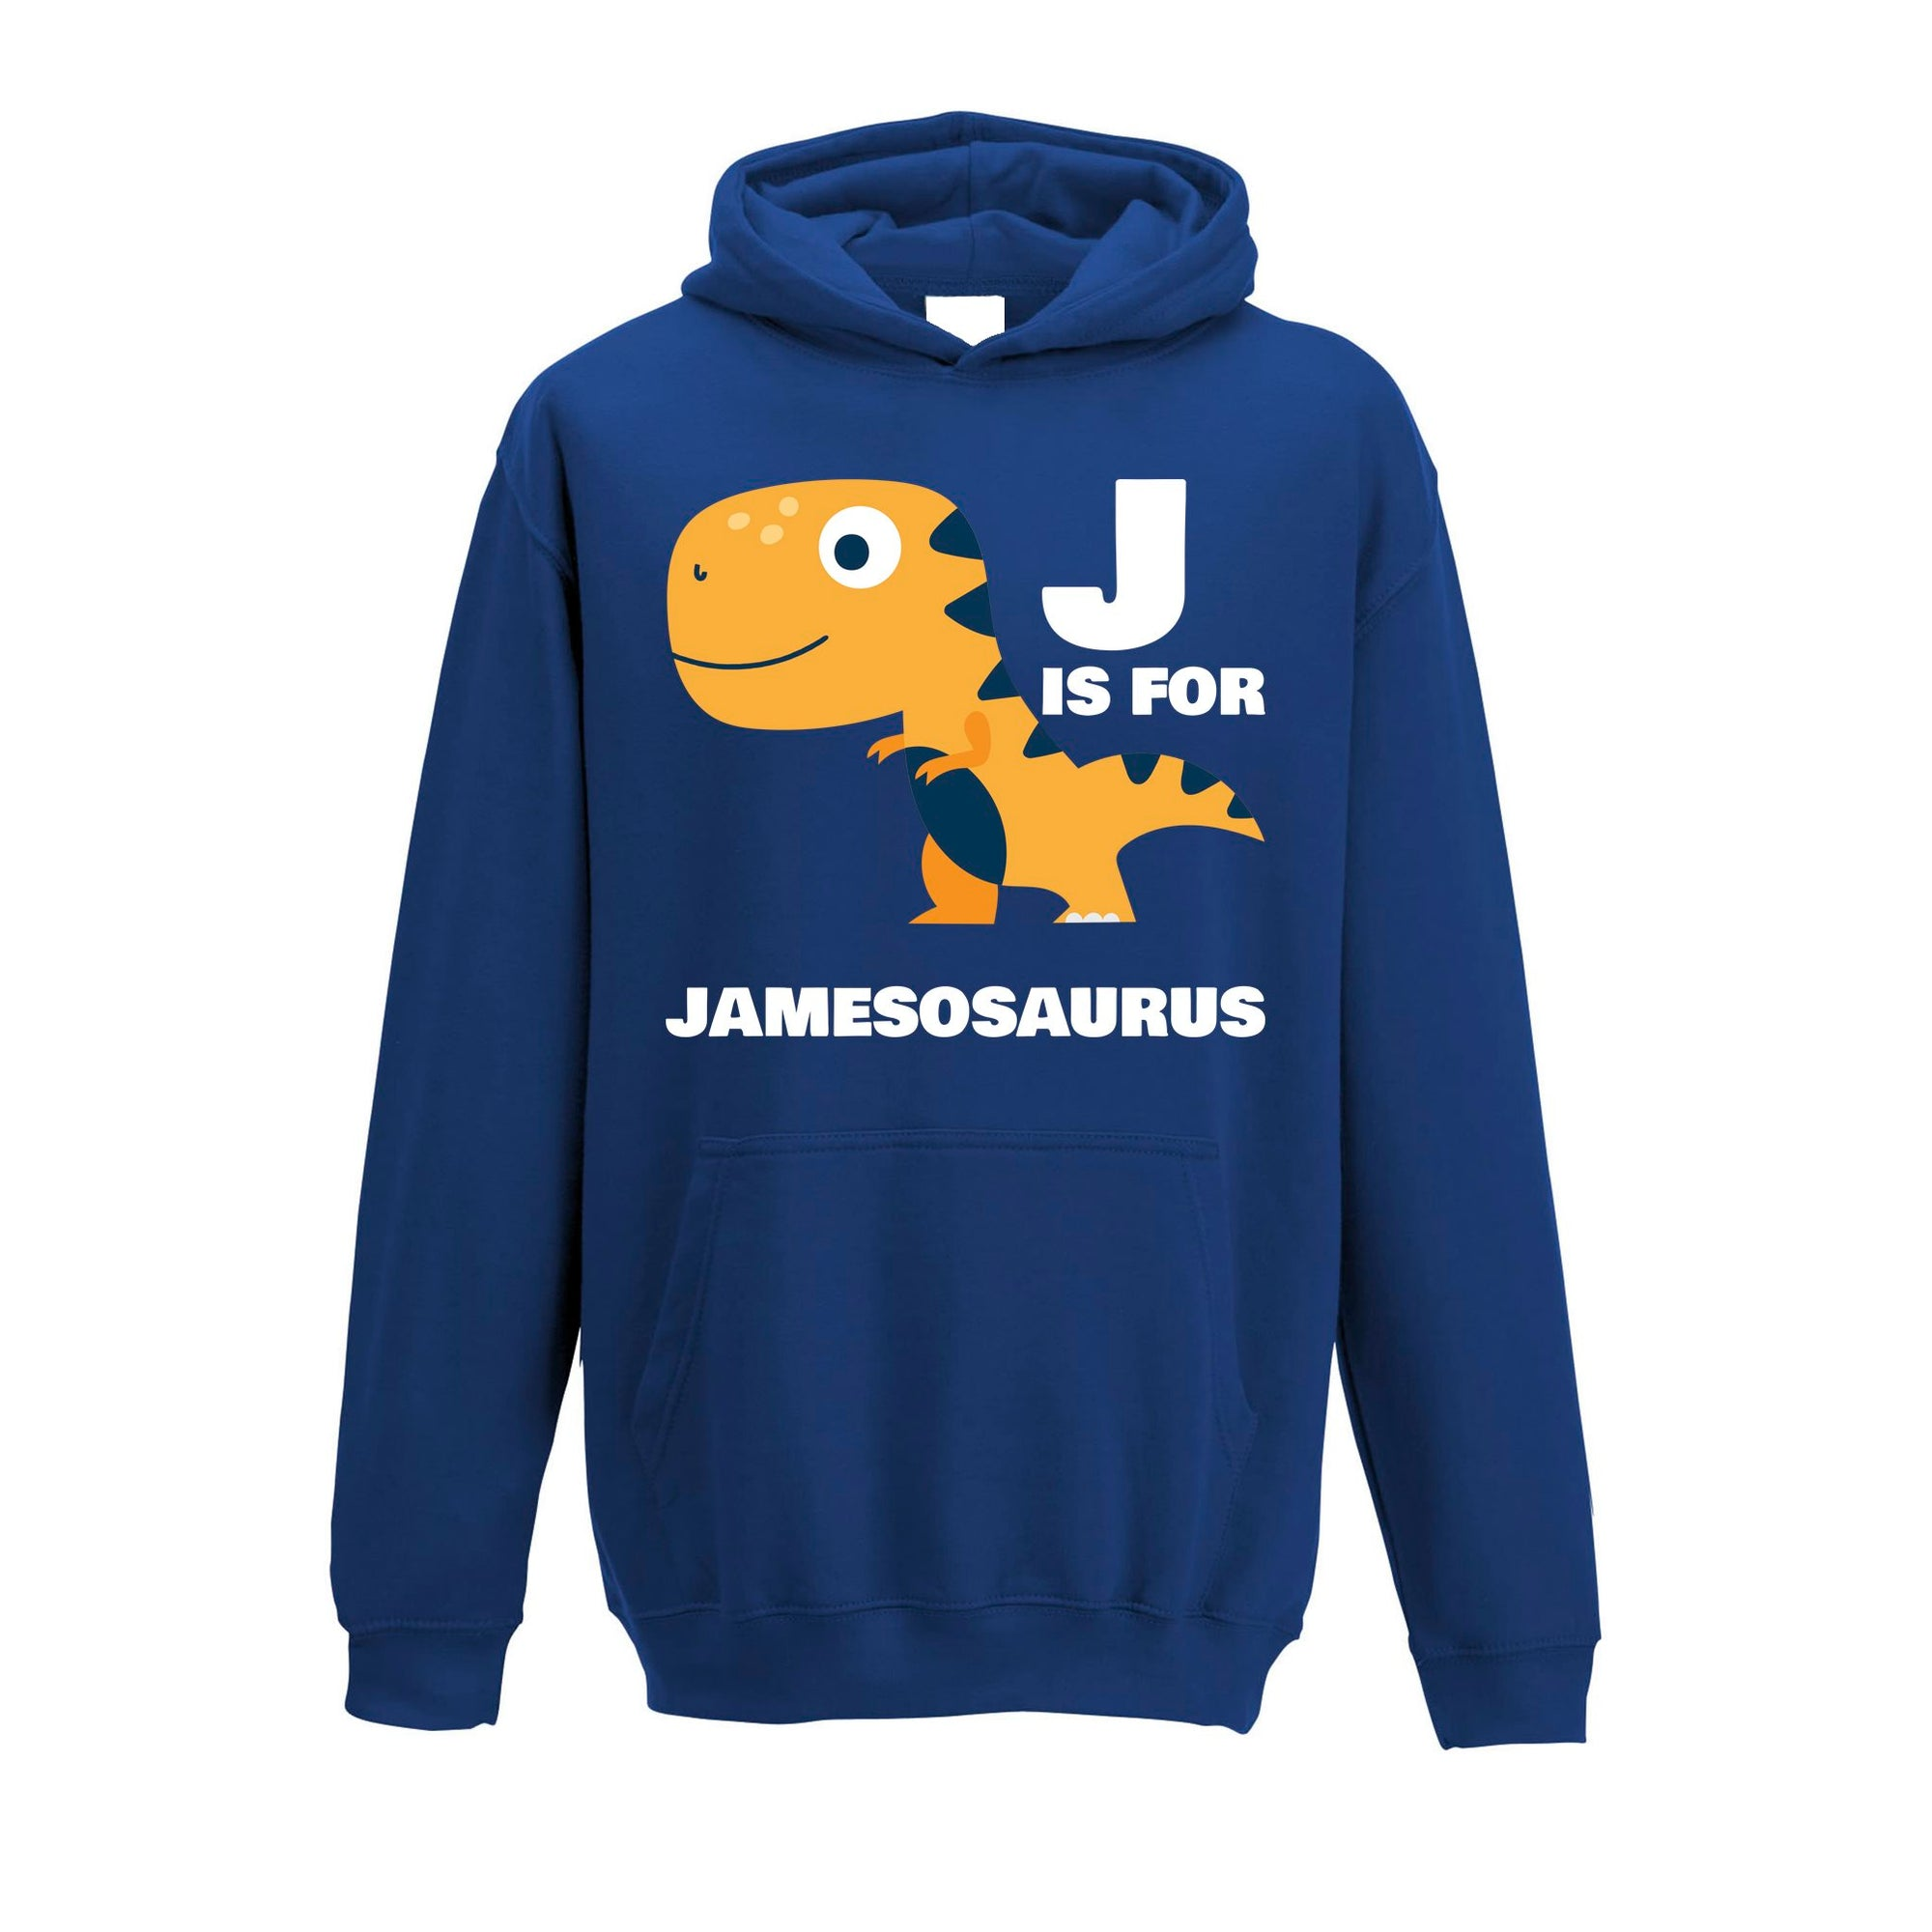 Dinosaur Kids Hoodie James Saurus Birth Name Childs